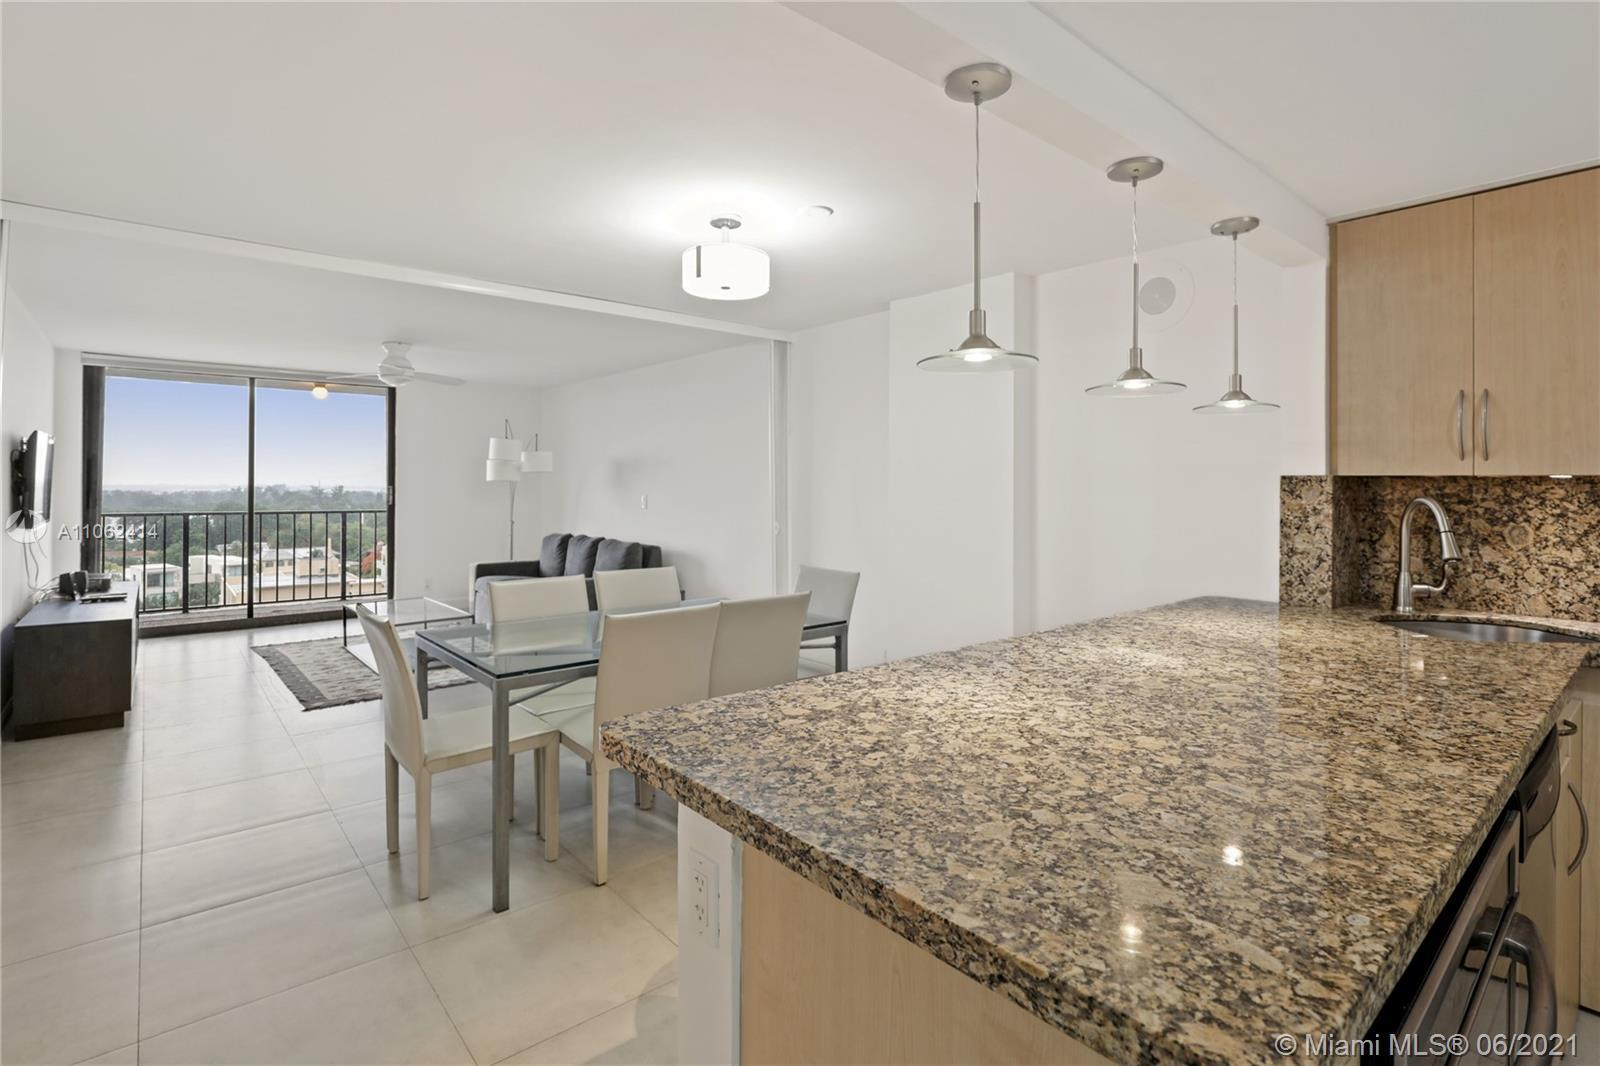 Rarely available, fully remodeled unit, ready to move in! Whether you are looking for a beach hide a